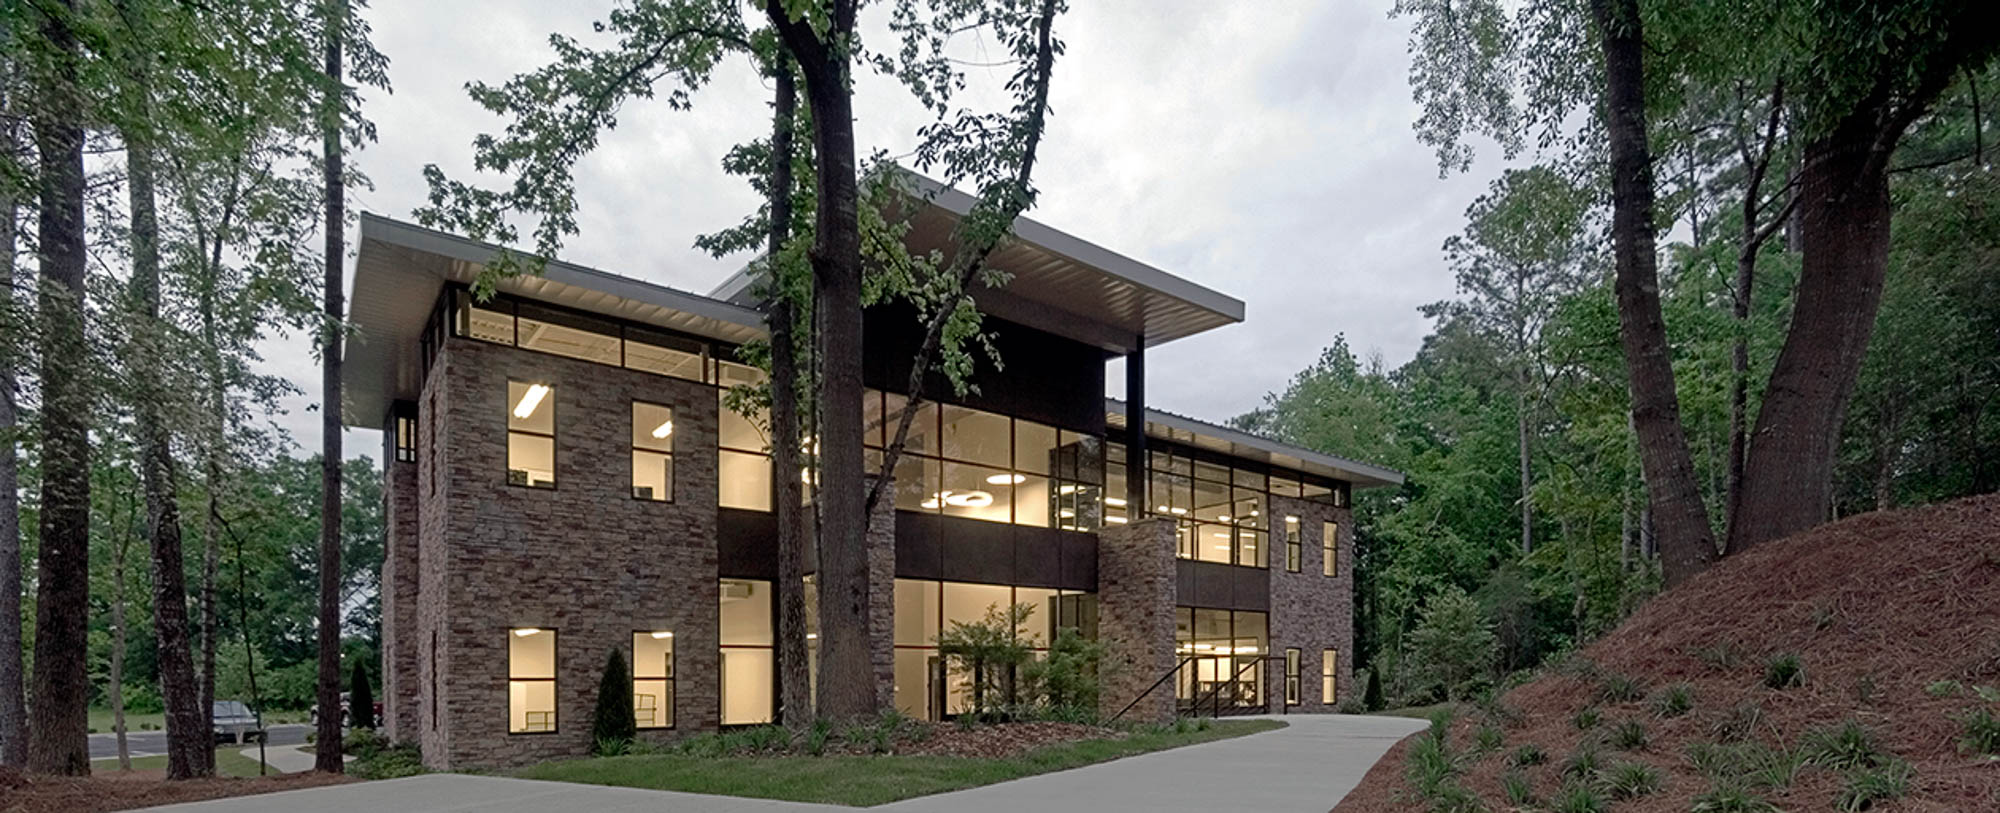 blr/further headquarters, meadowbrook office park